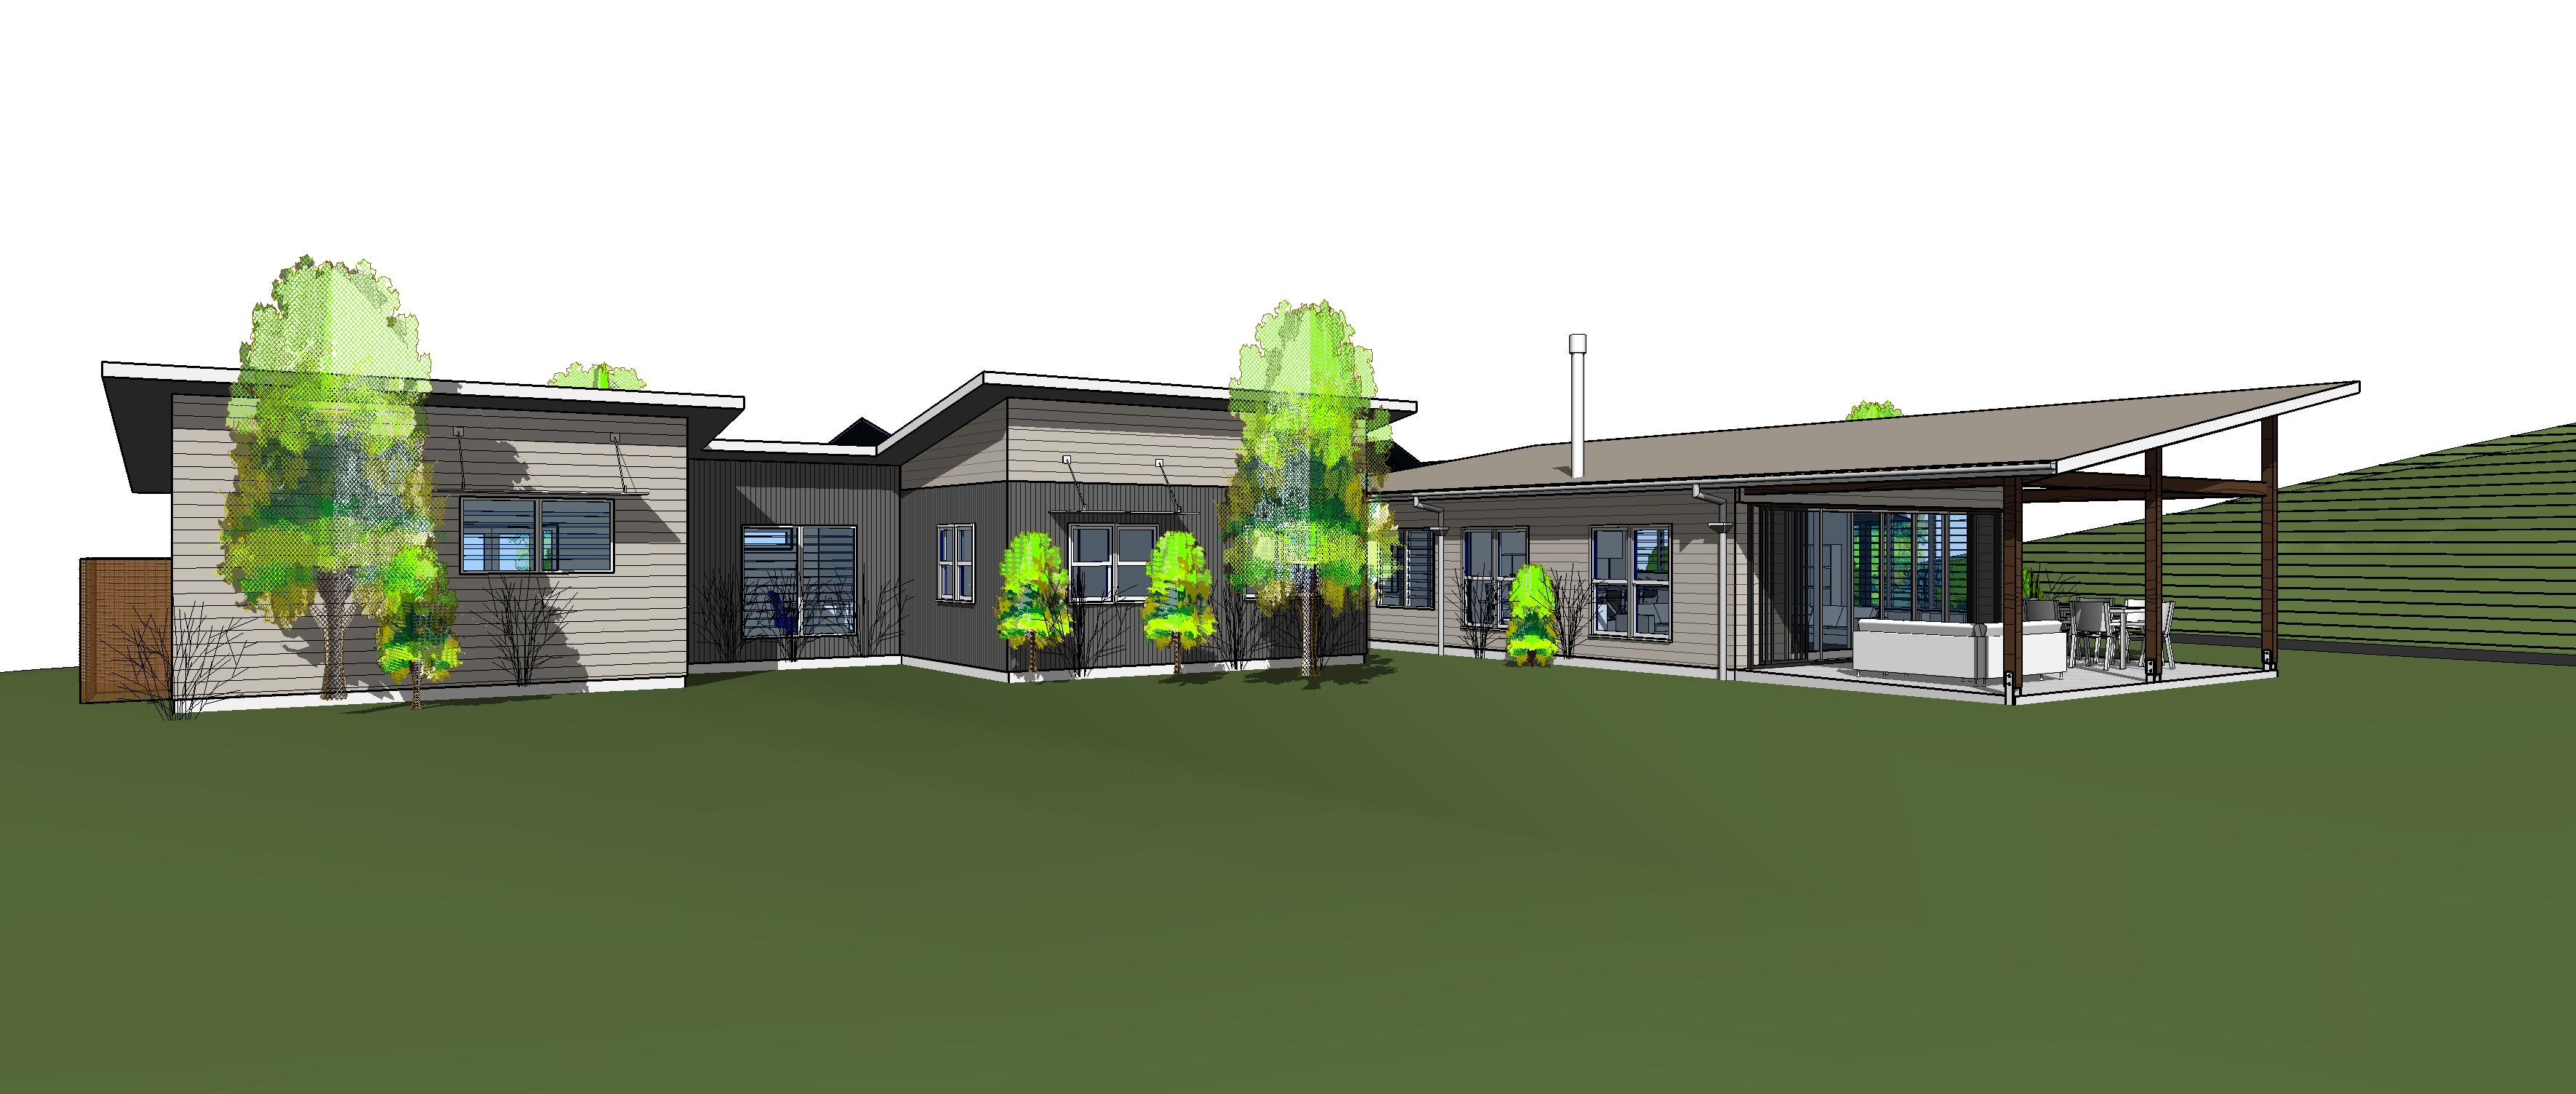 image of random house in revit 3d